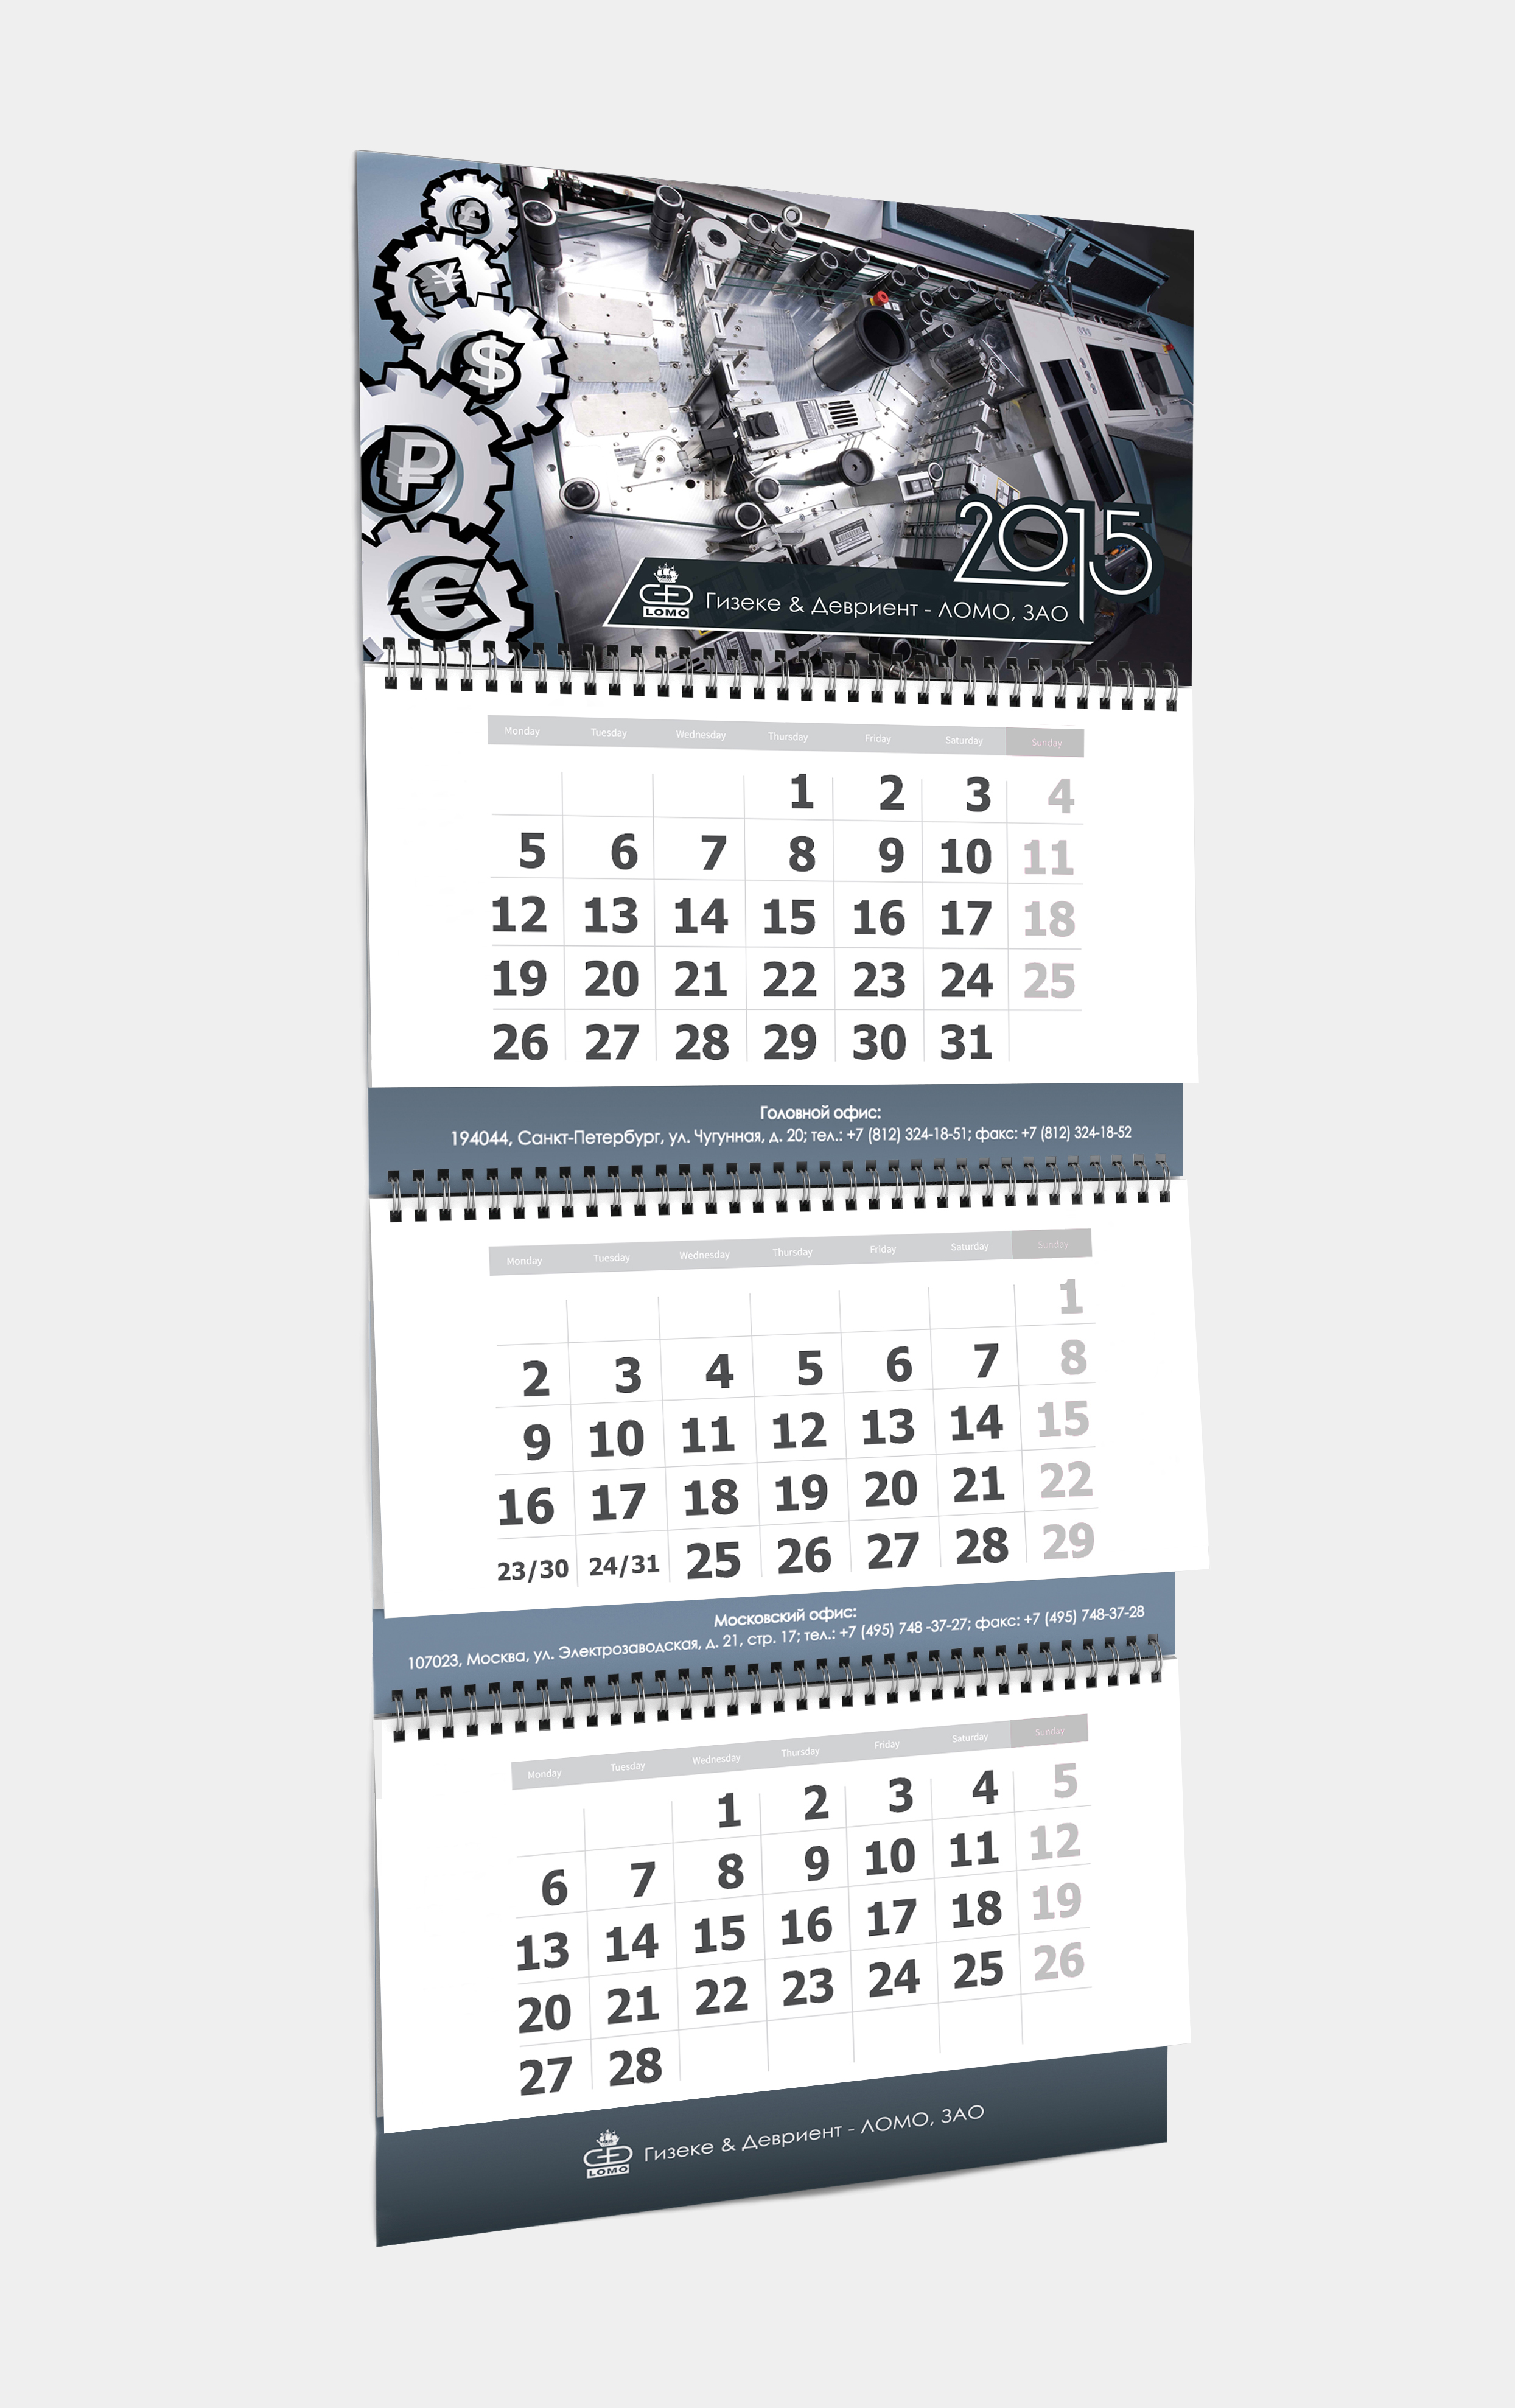 wall_calendar_mock_up_1_ЛОМО